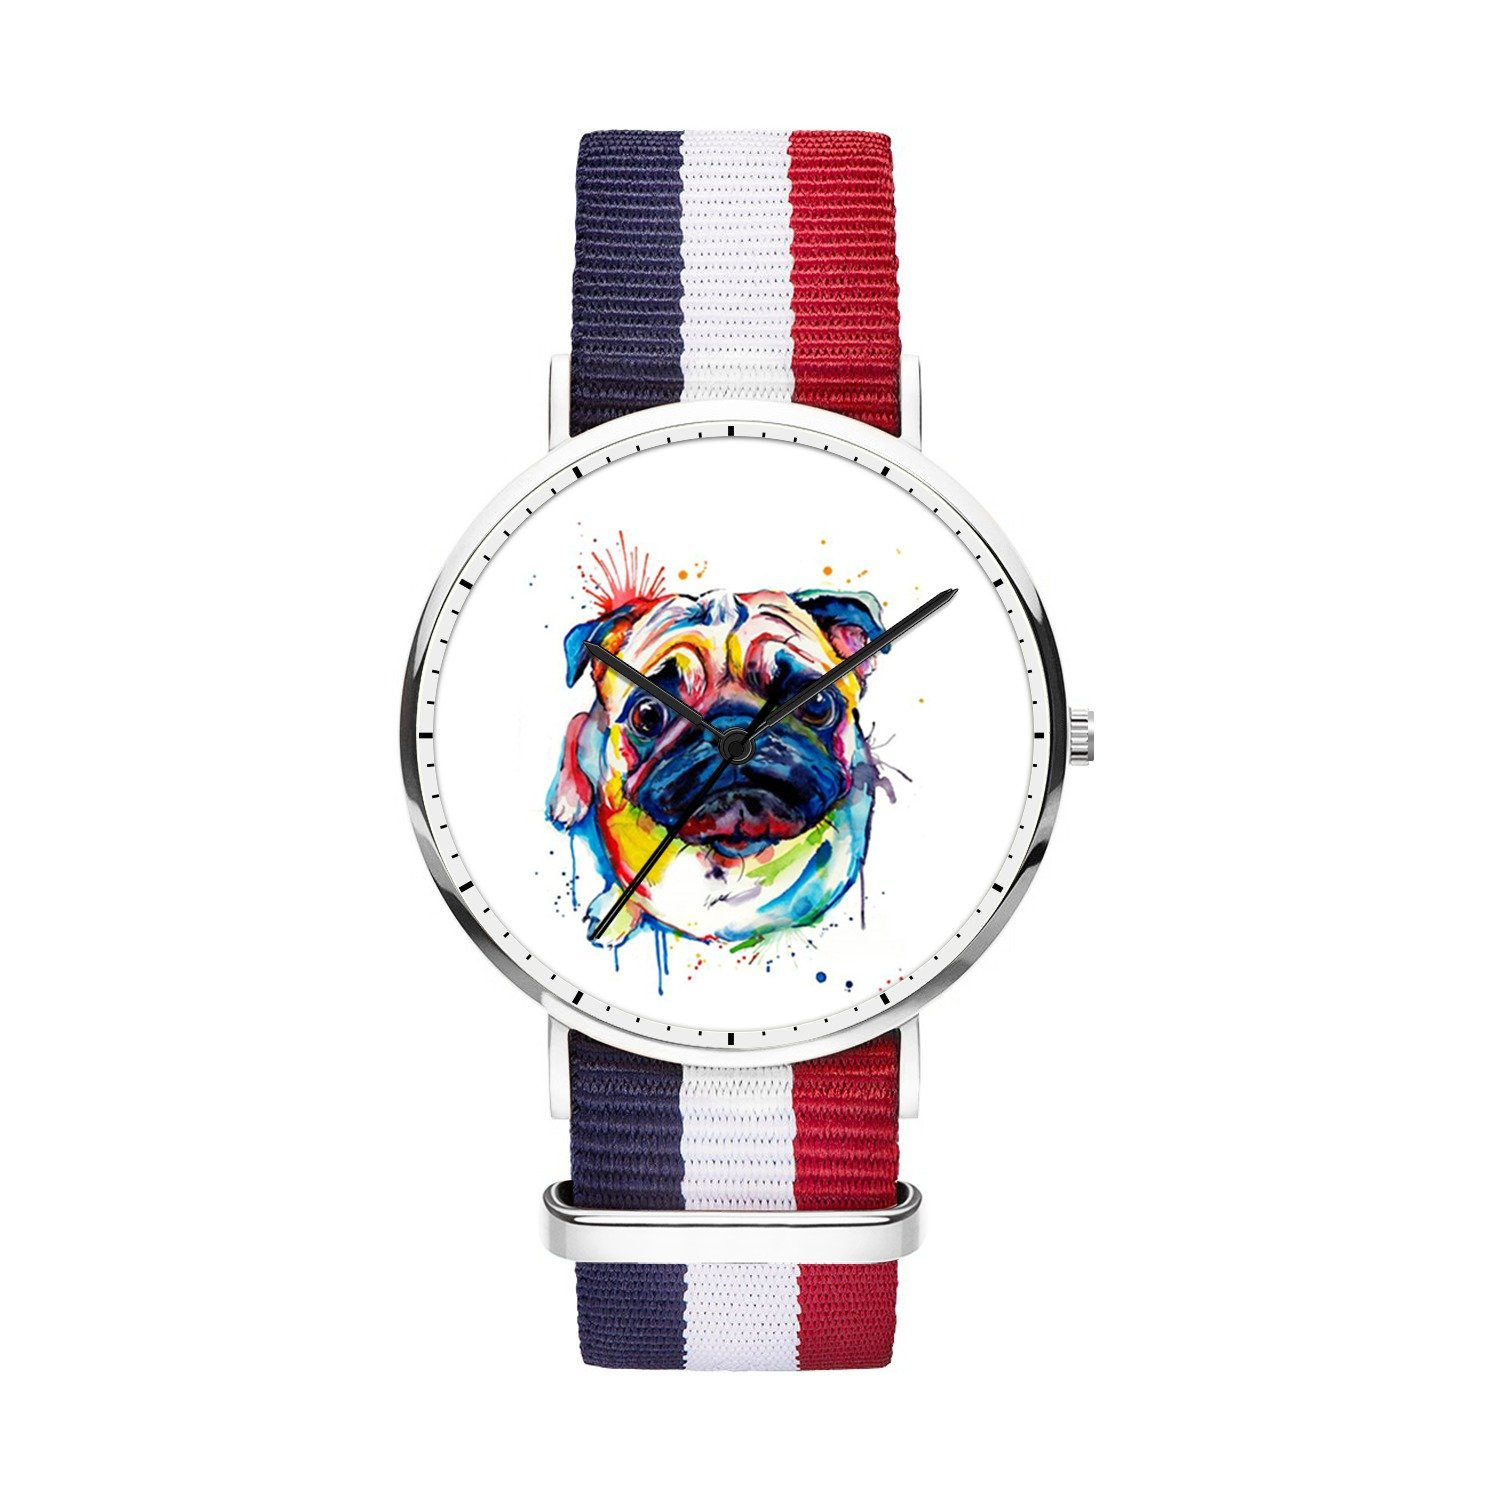 FELOOWSE Girls Watches, Women Watches, Sliver Slim Minimalist Imported Japanese Quartz PracticalWaterproof Unique Personalized Youth Fashion Design Cute Watches for Women.- Pug